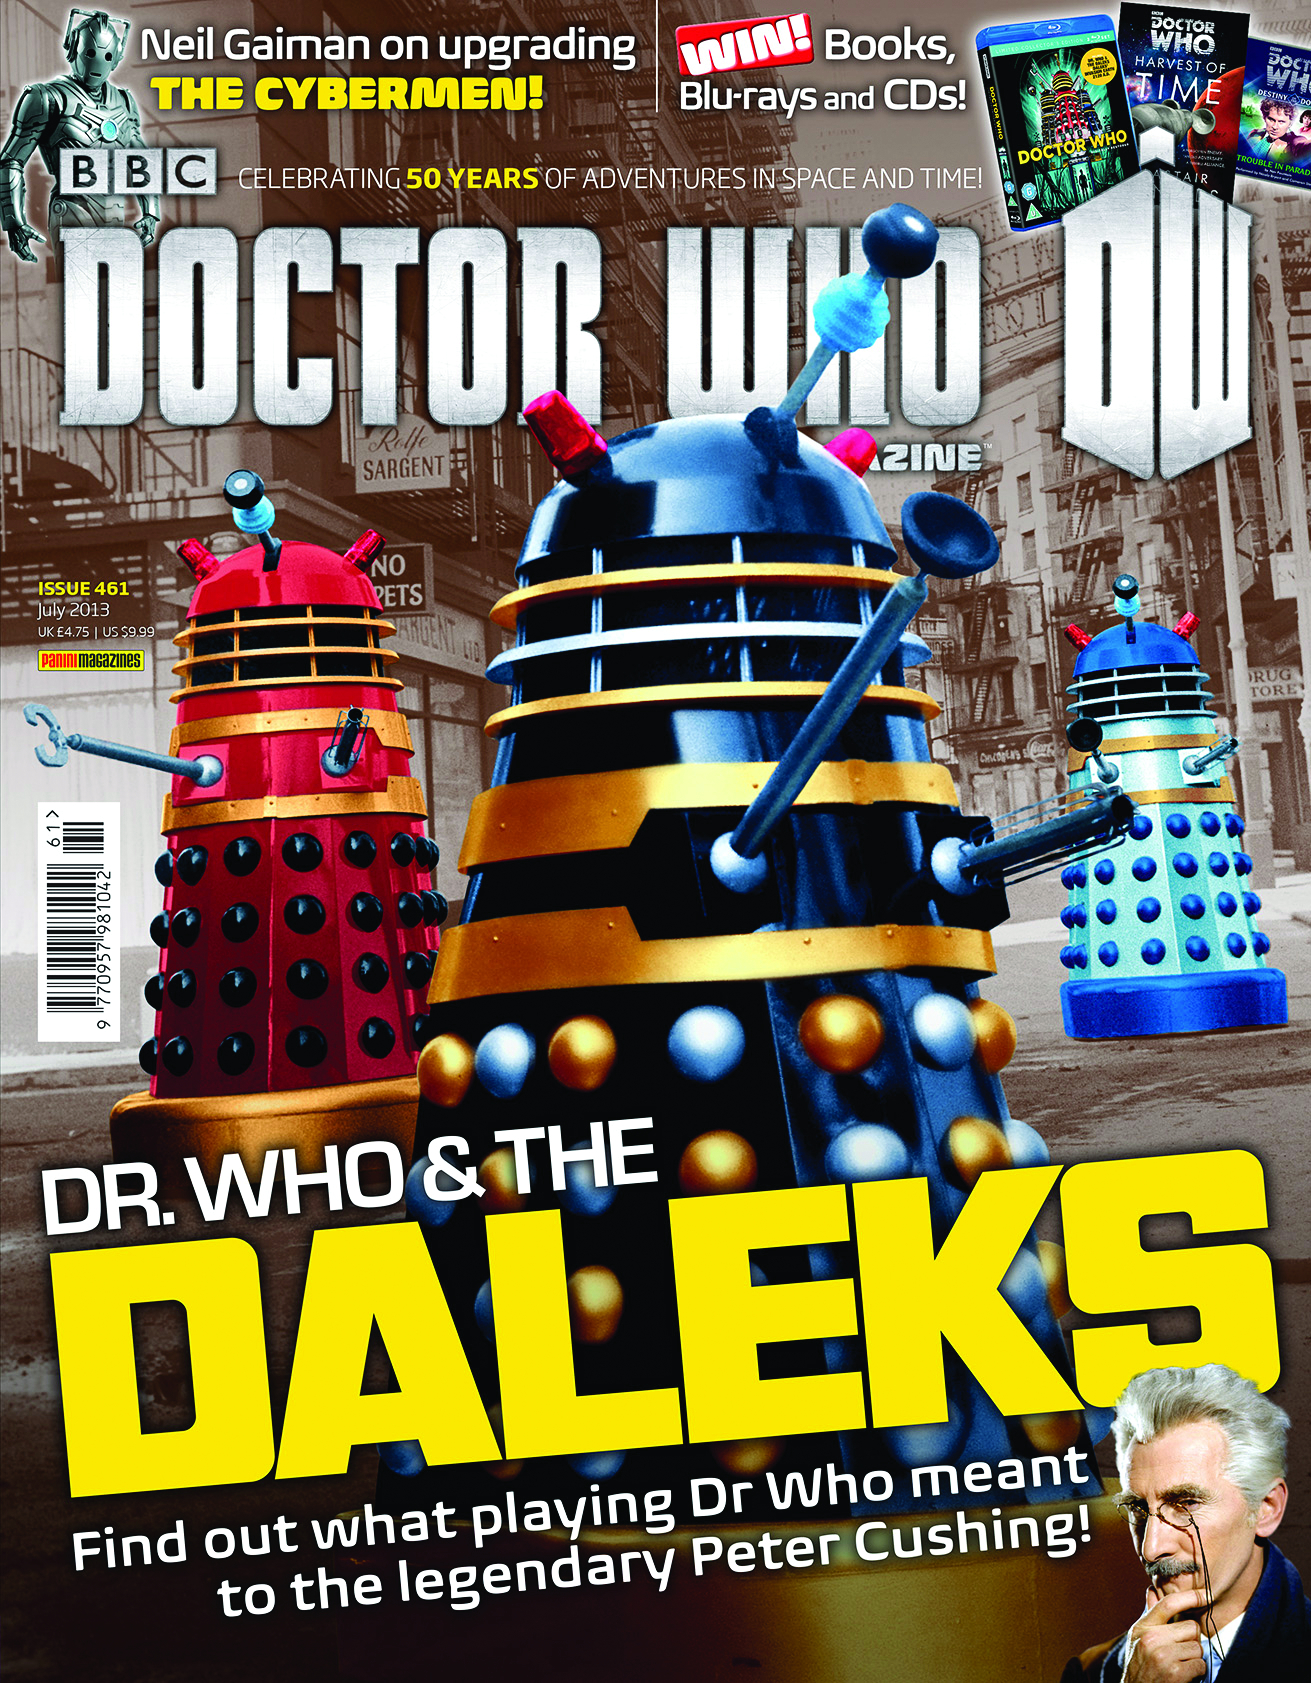 DOCTOR WHO MAGAZINE #466